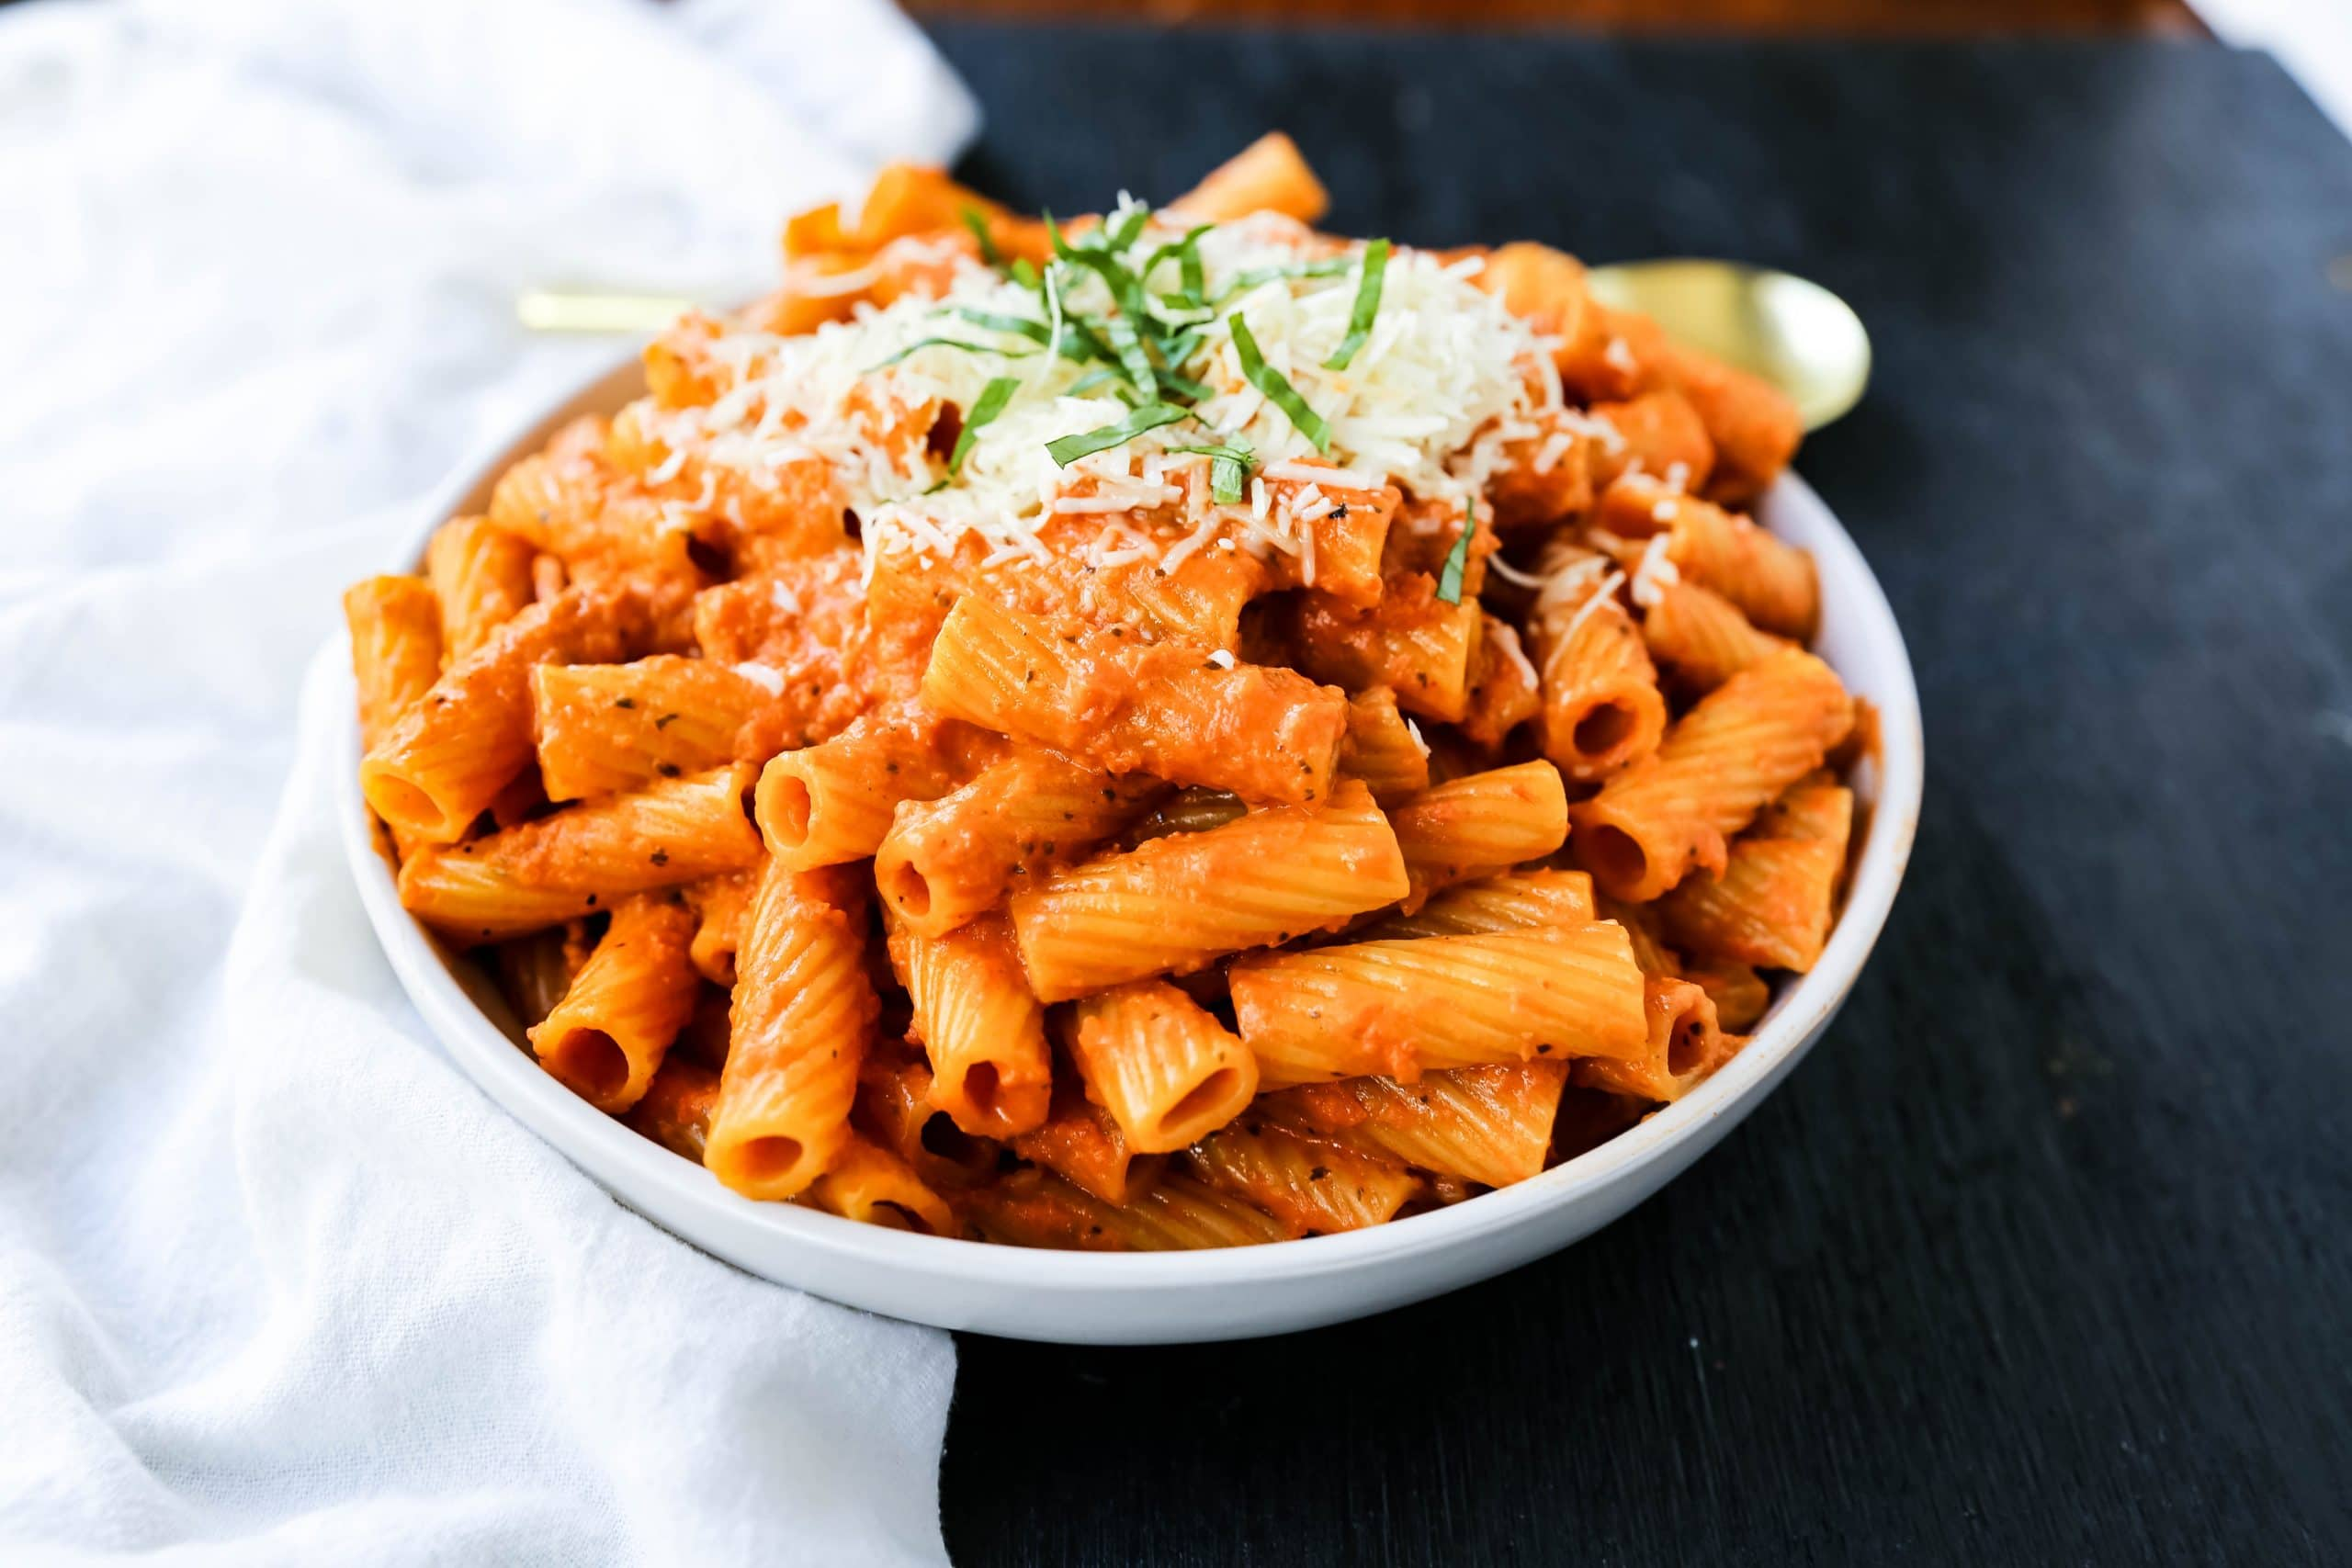 Creamy Roasted Red Pepper Pasta  A creamy roasted red pepper and tomato basil sauce with garlic and heavy cream all tossed together with pasta and topped with parmesan cheese. A flavorful robust pasta dish! www.modernhoney.com #pasta #italian #italianfood